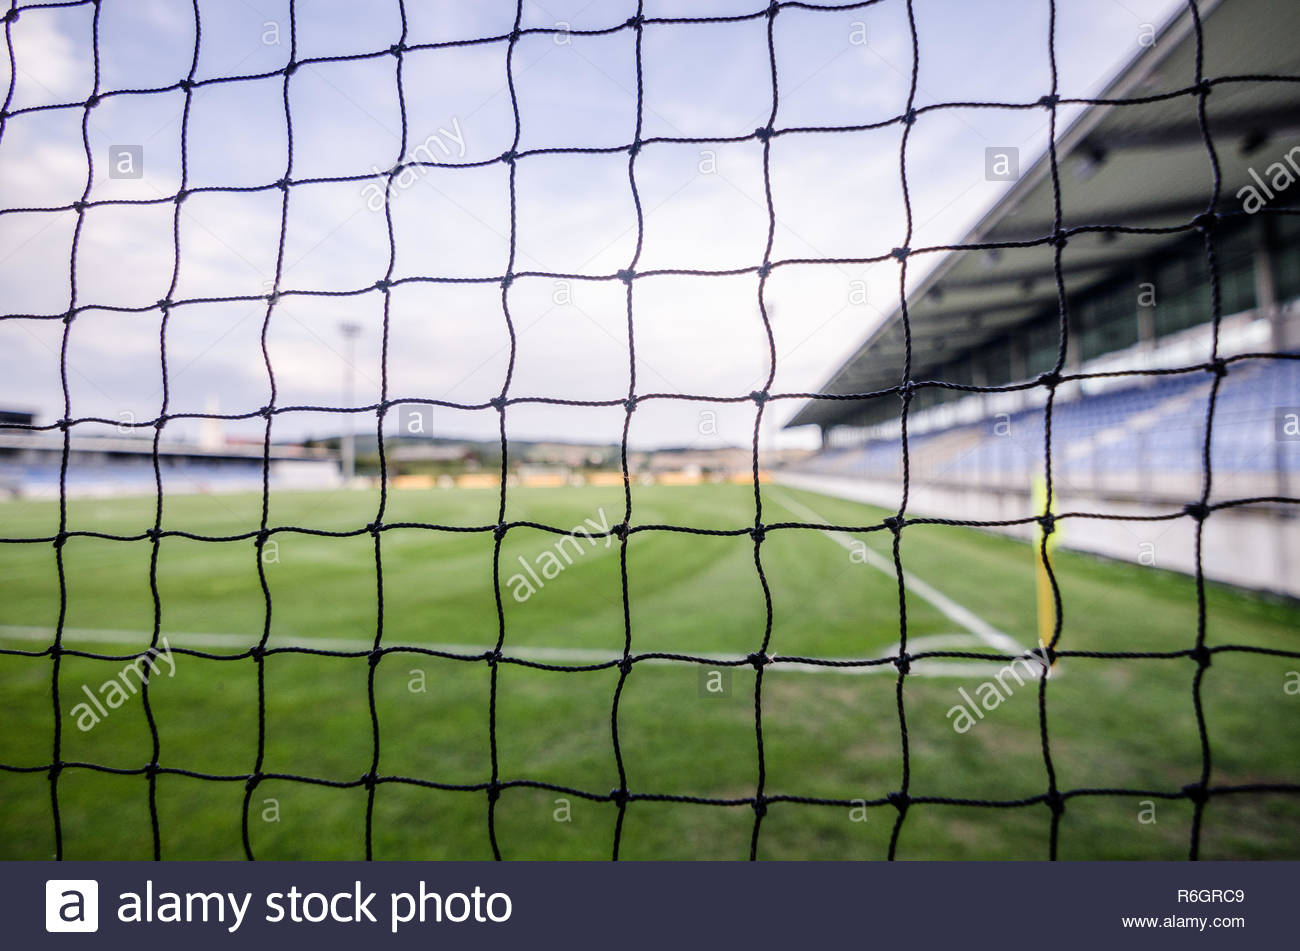 soccer field with net detail - Stock Image